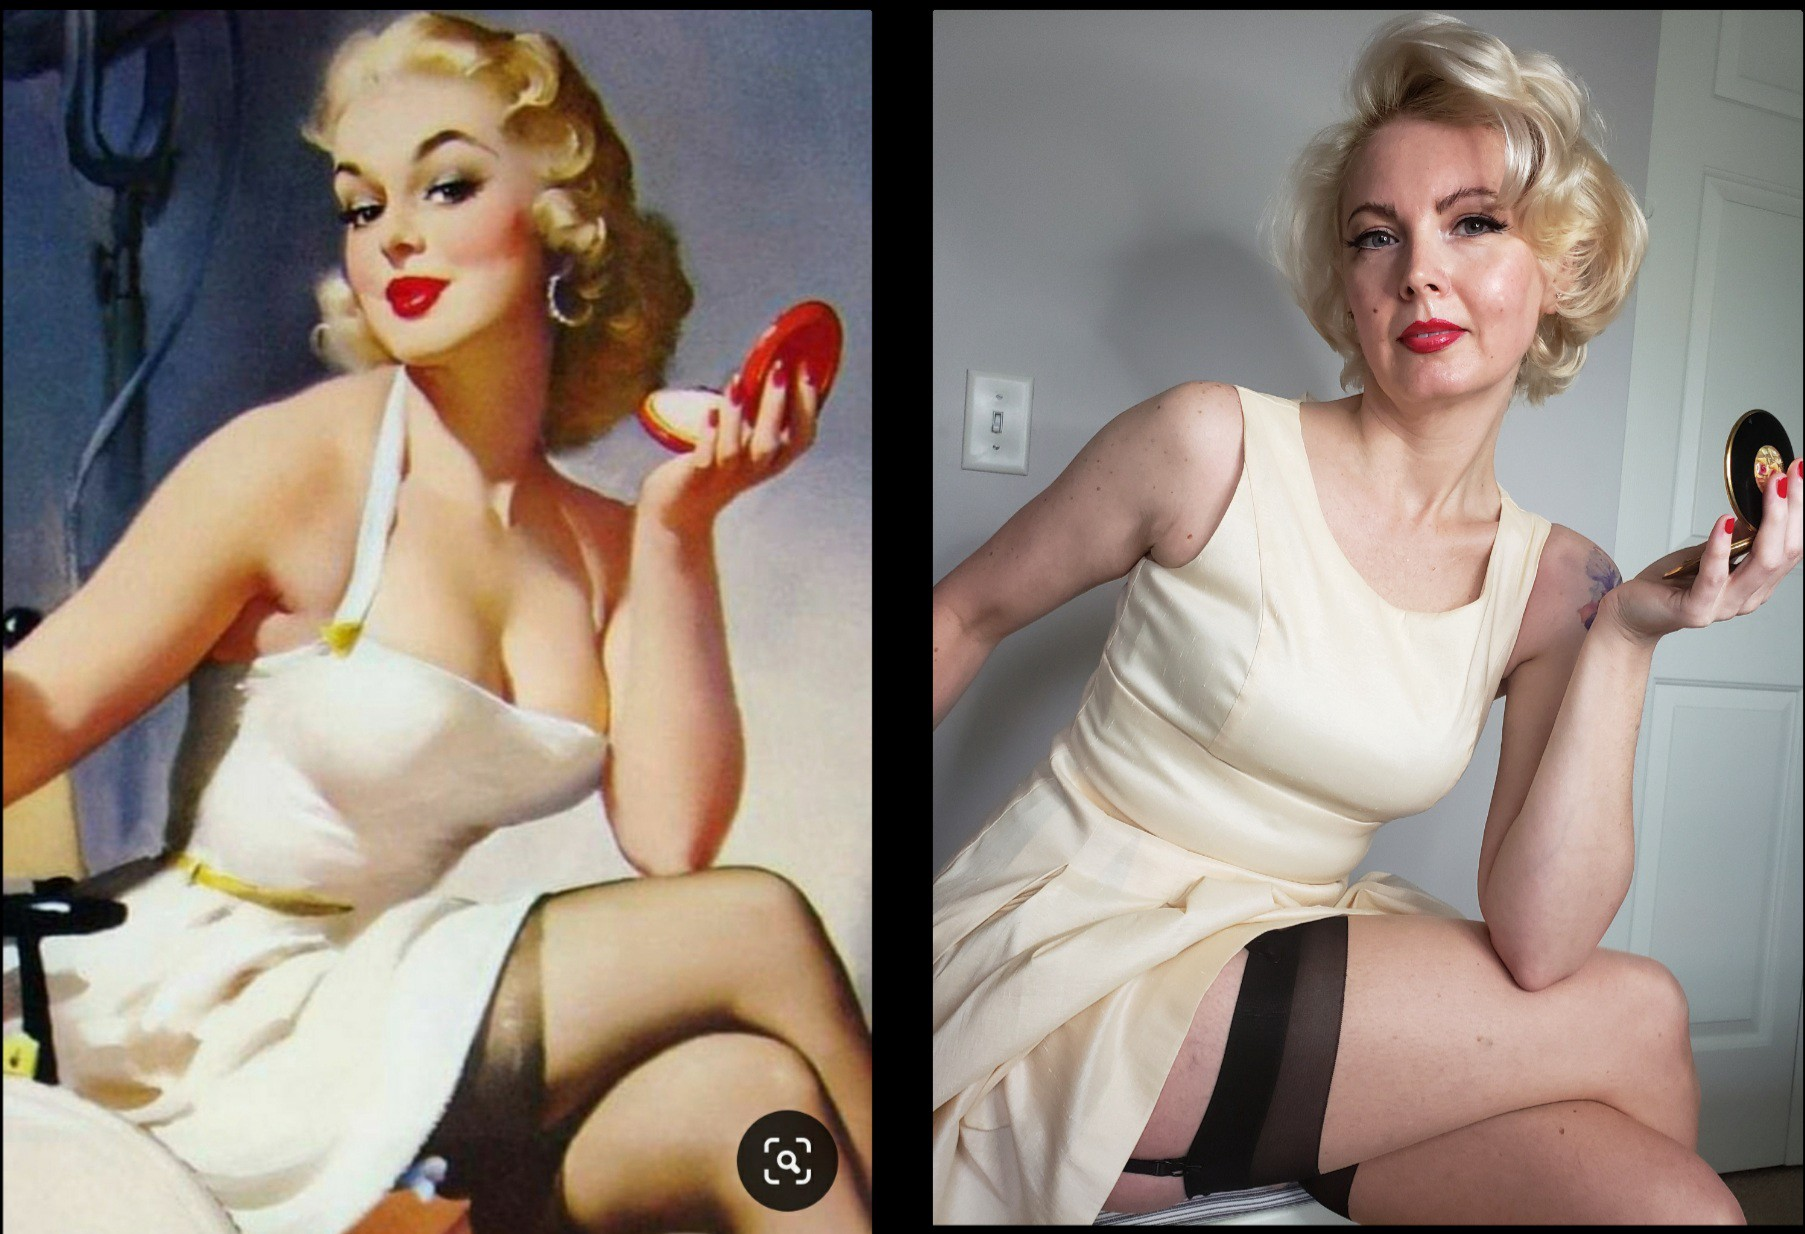 Classic pinup drawing with model imitating it